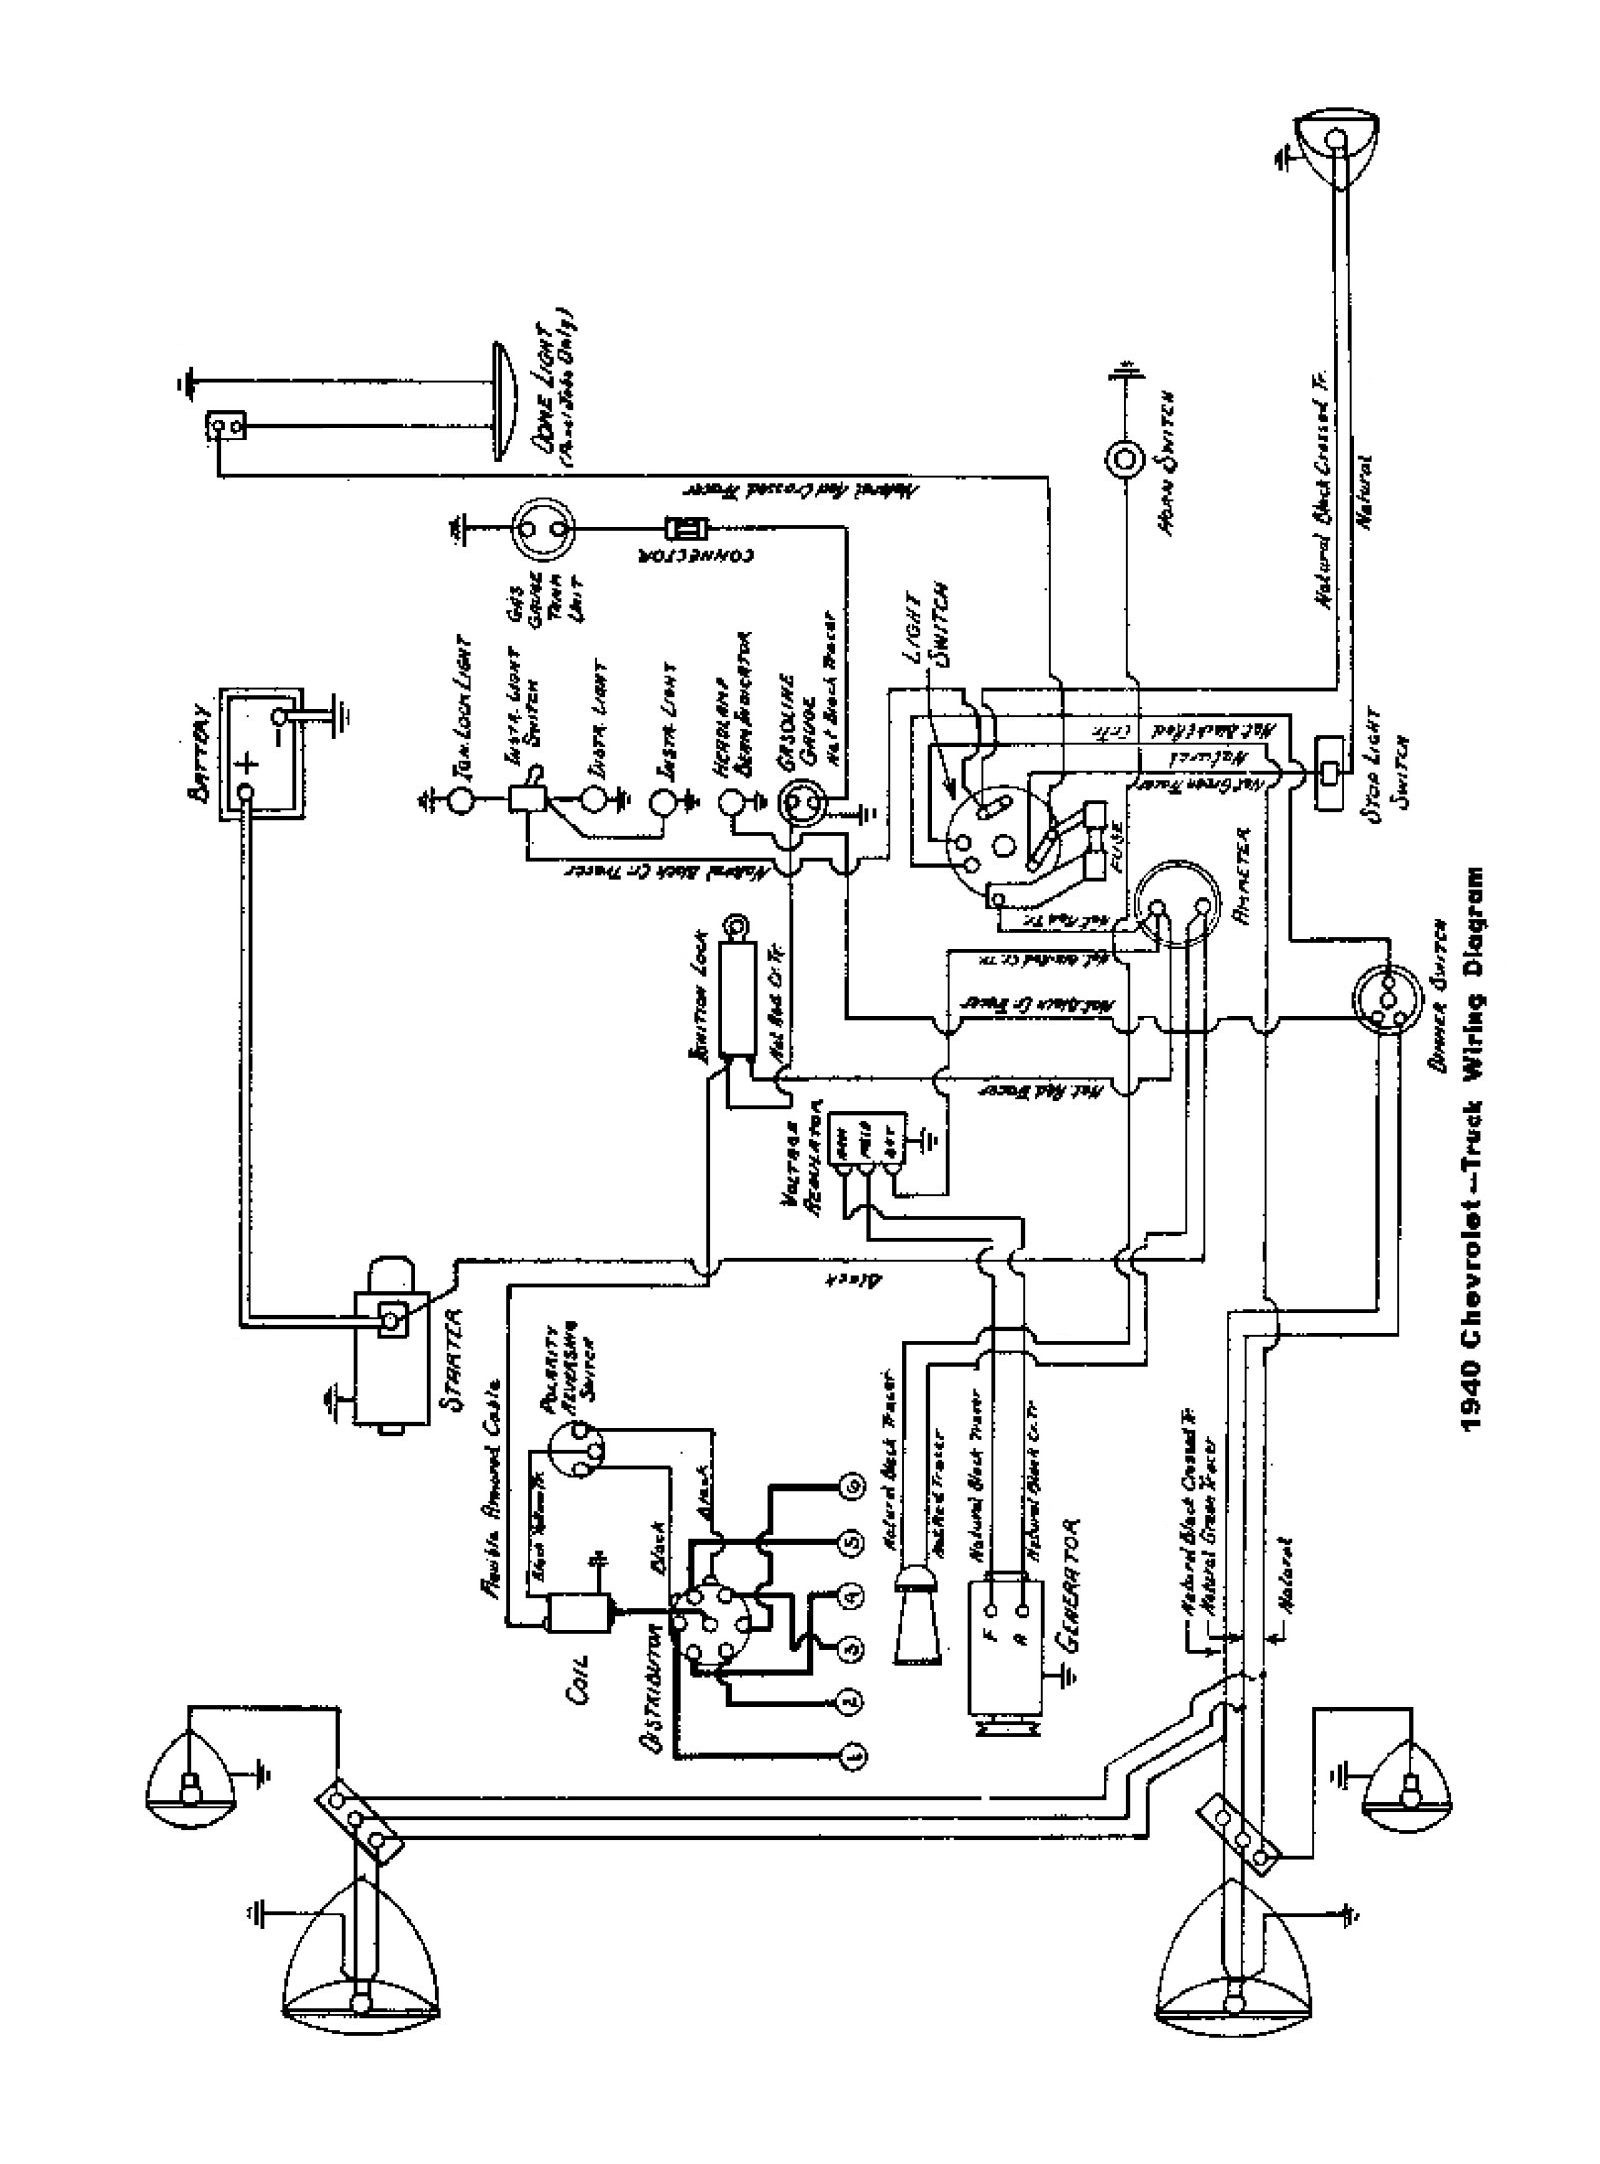 hight resolution of 1946 chevy pickup ignition wiring diagram schematic wiring diagram 46 chevy sedan wiring diagram